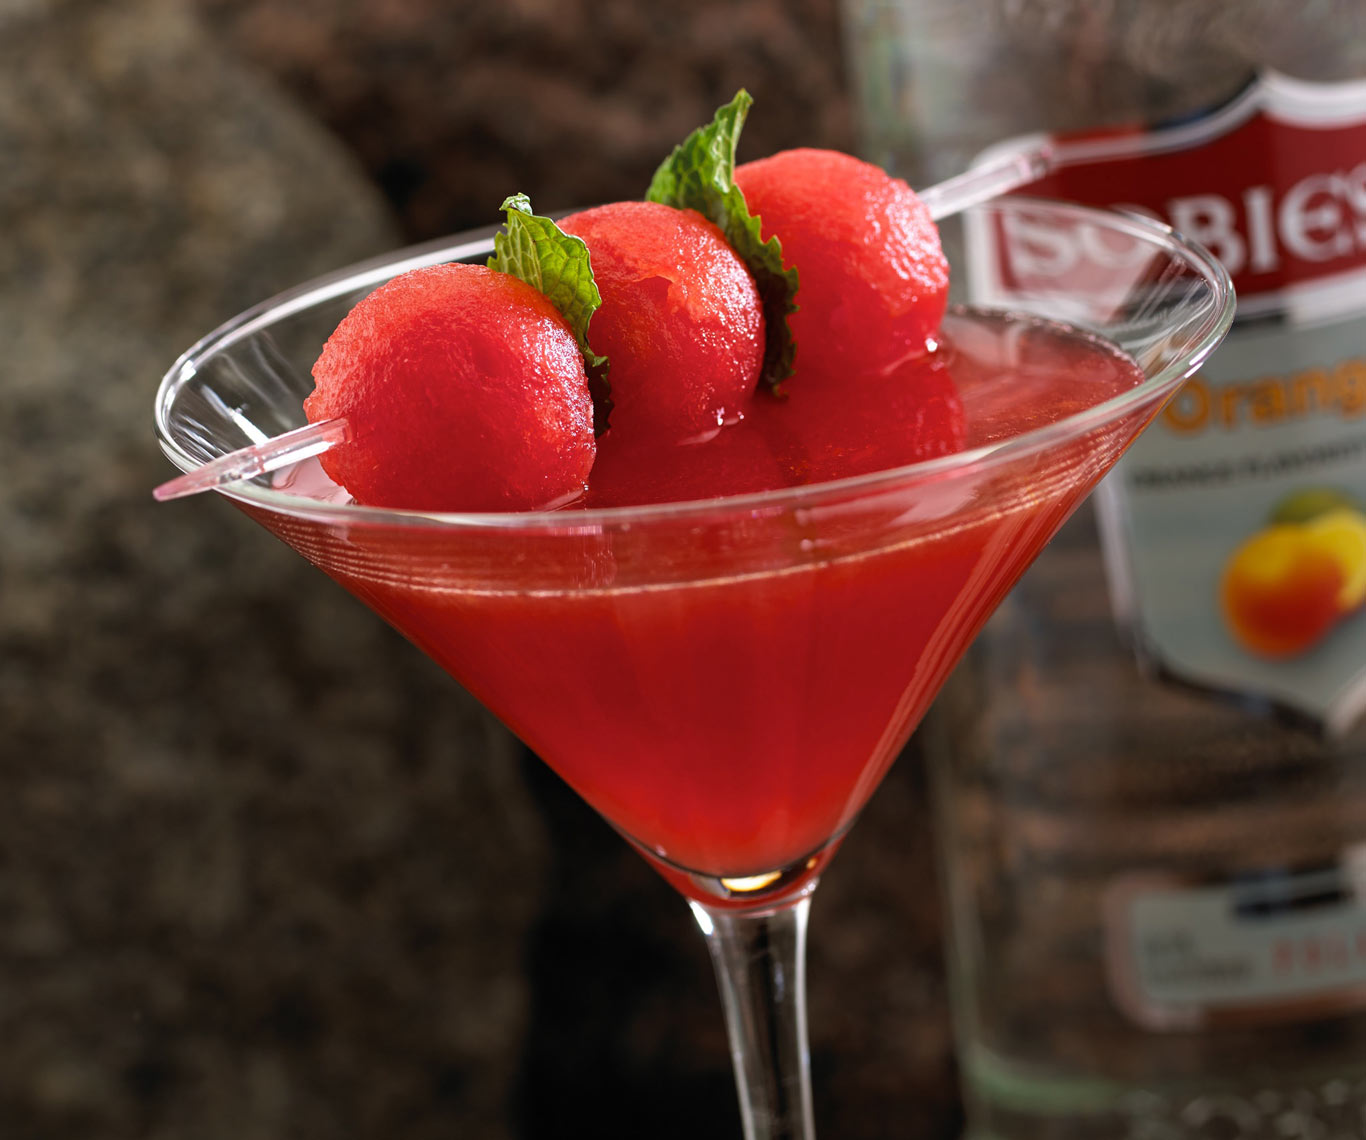 Fruit martini with a skewer of fruit and mint, orange vodka bottle in background.  Food photography, InsideOut Studios.